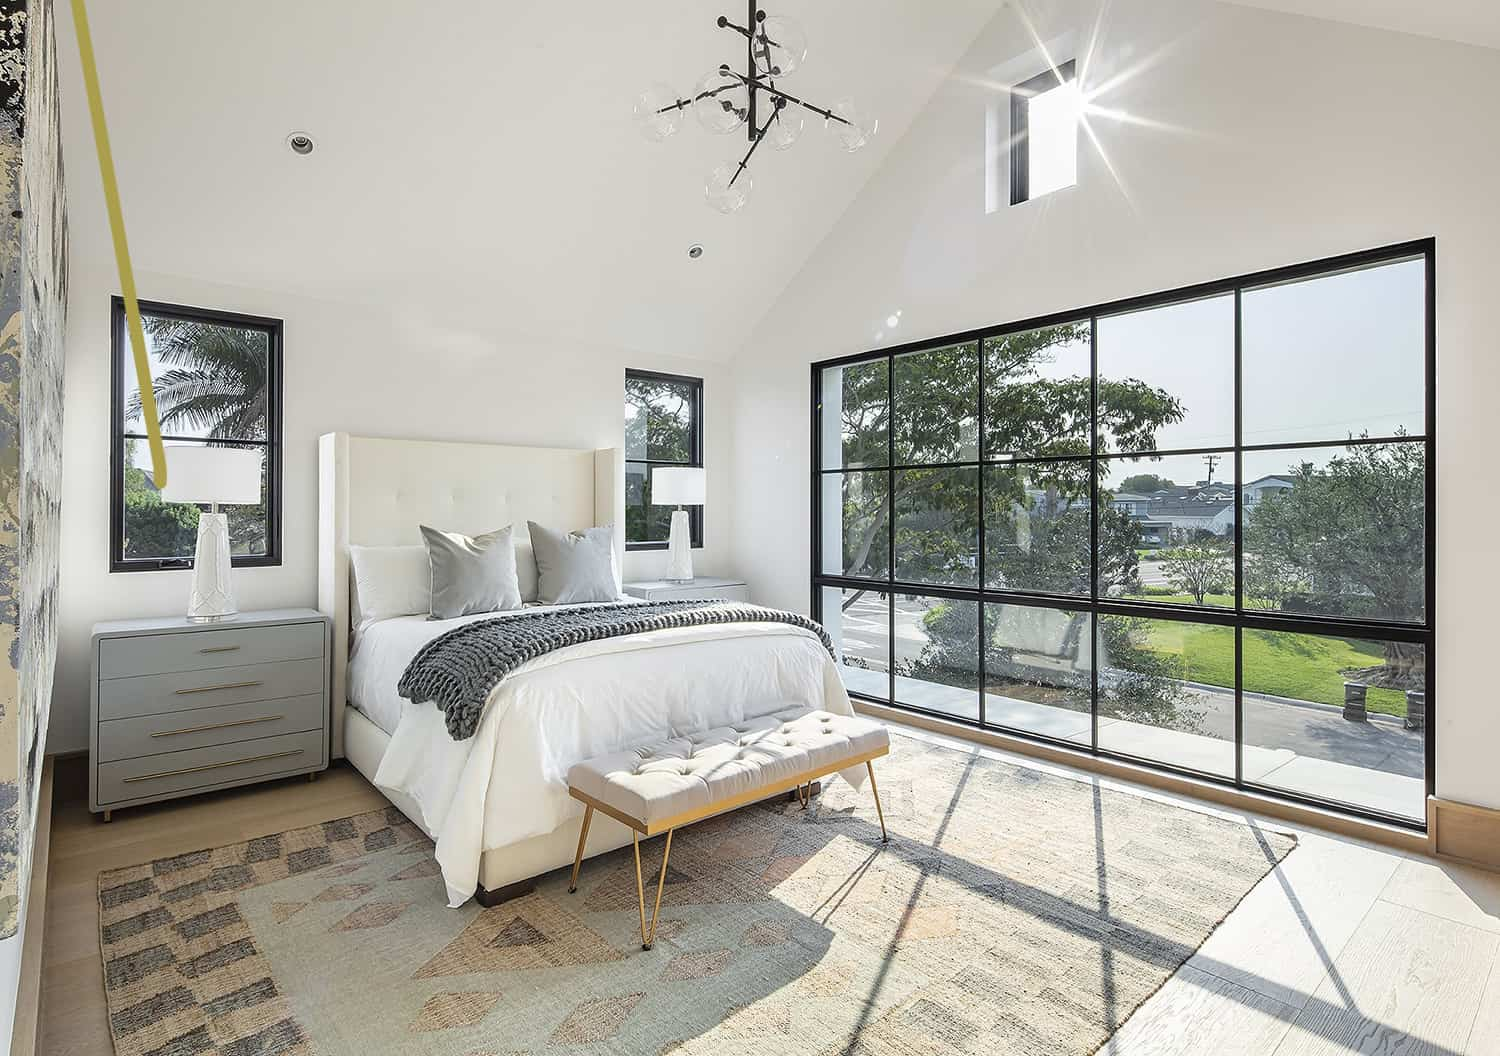 european-transitional-style-bedroom